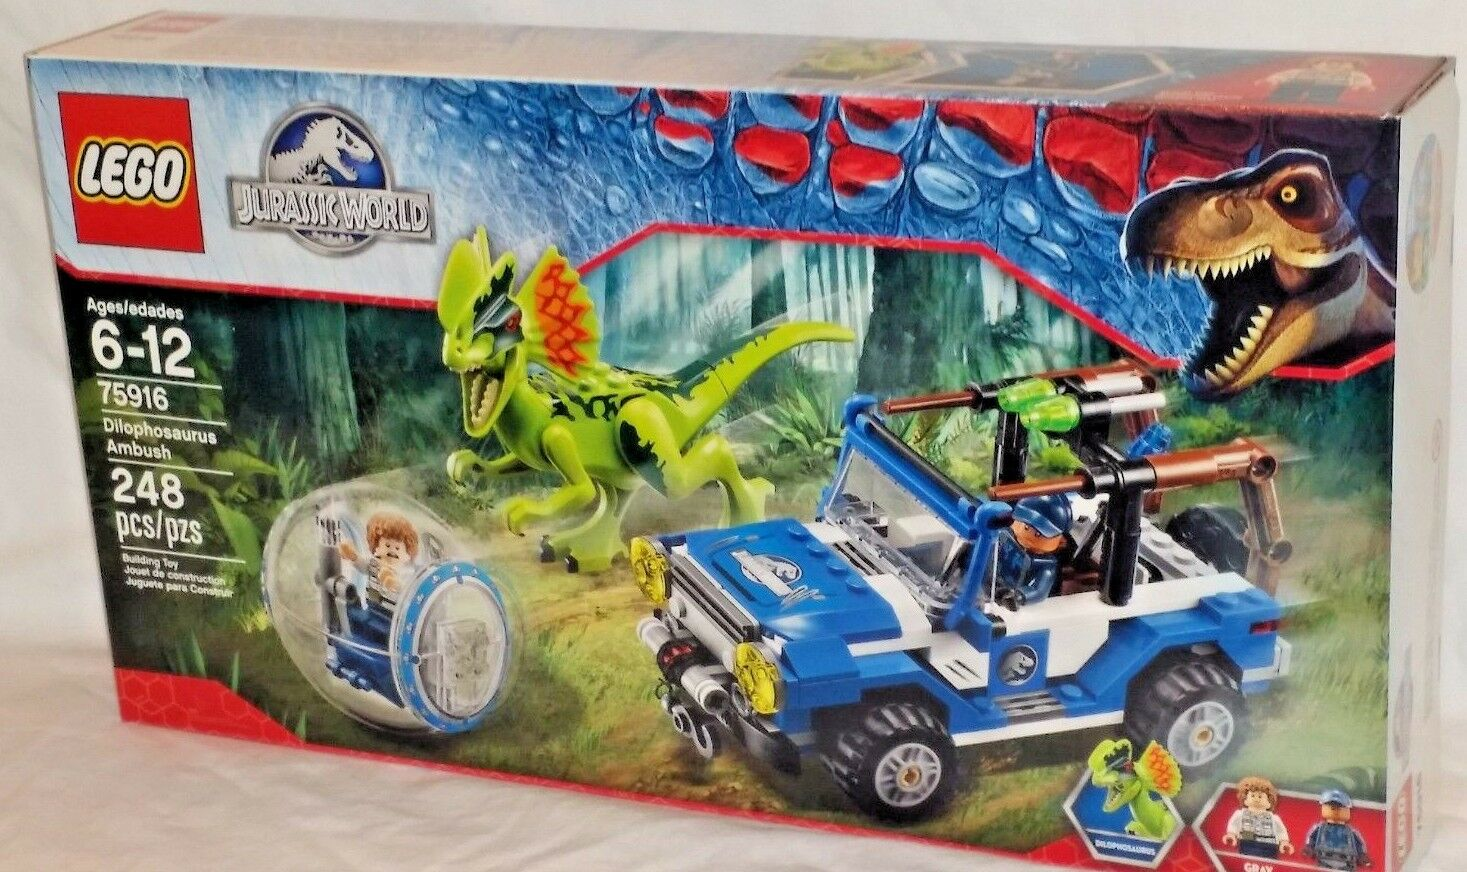 SEALED 75916 LEGO Jurassic World movie DILOPHOSAURUS AMBUSH 248 pc set RETIrosso